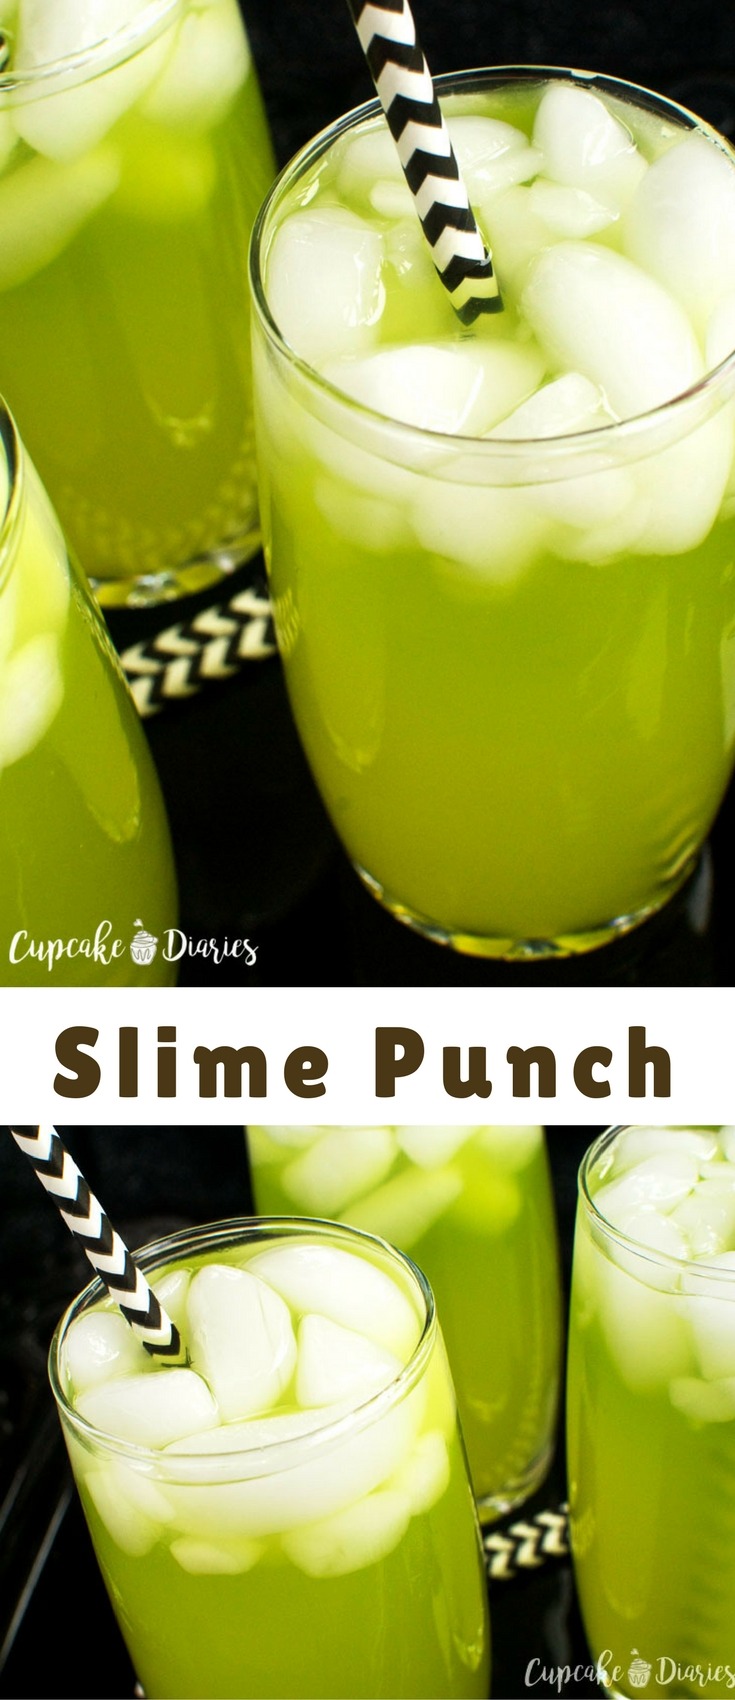 Slime Punch is the perfect drink to serve at a Ghostbusters® or Halloween party! And it's kid friendly so everyone can enjoy.